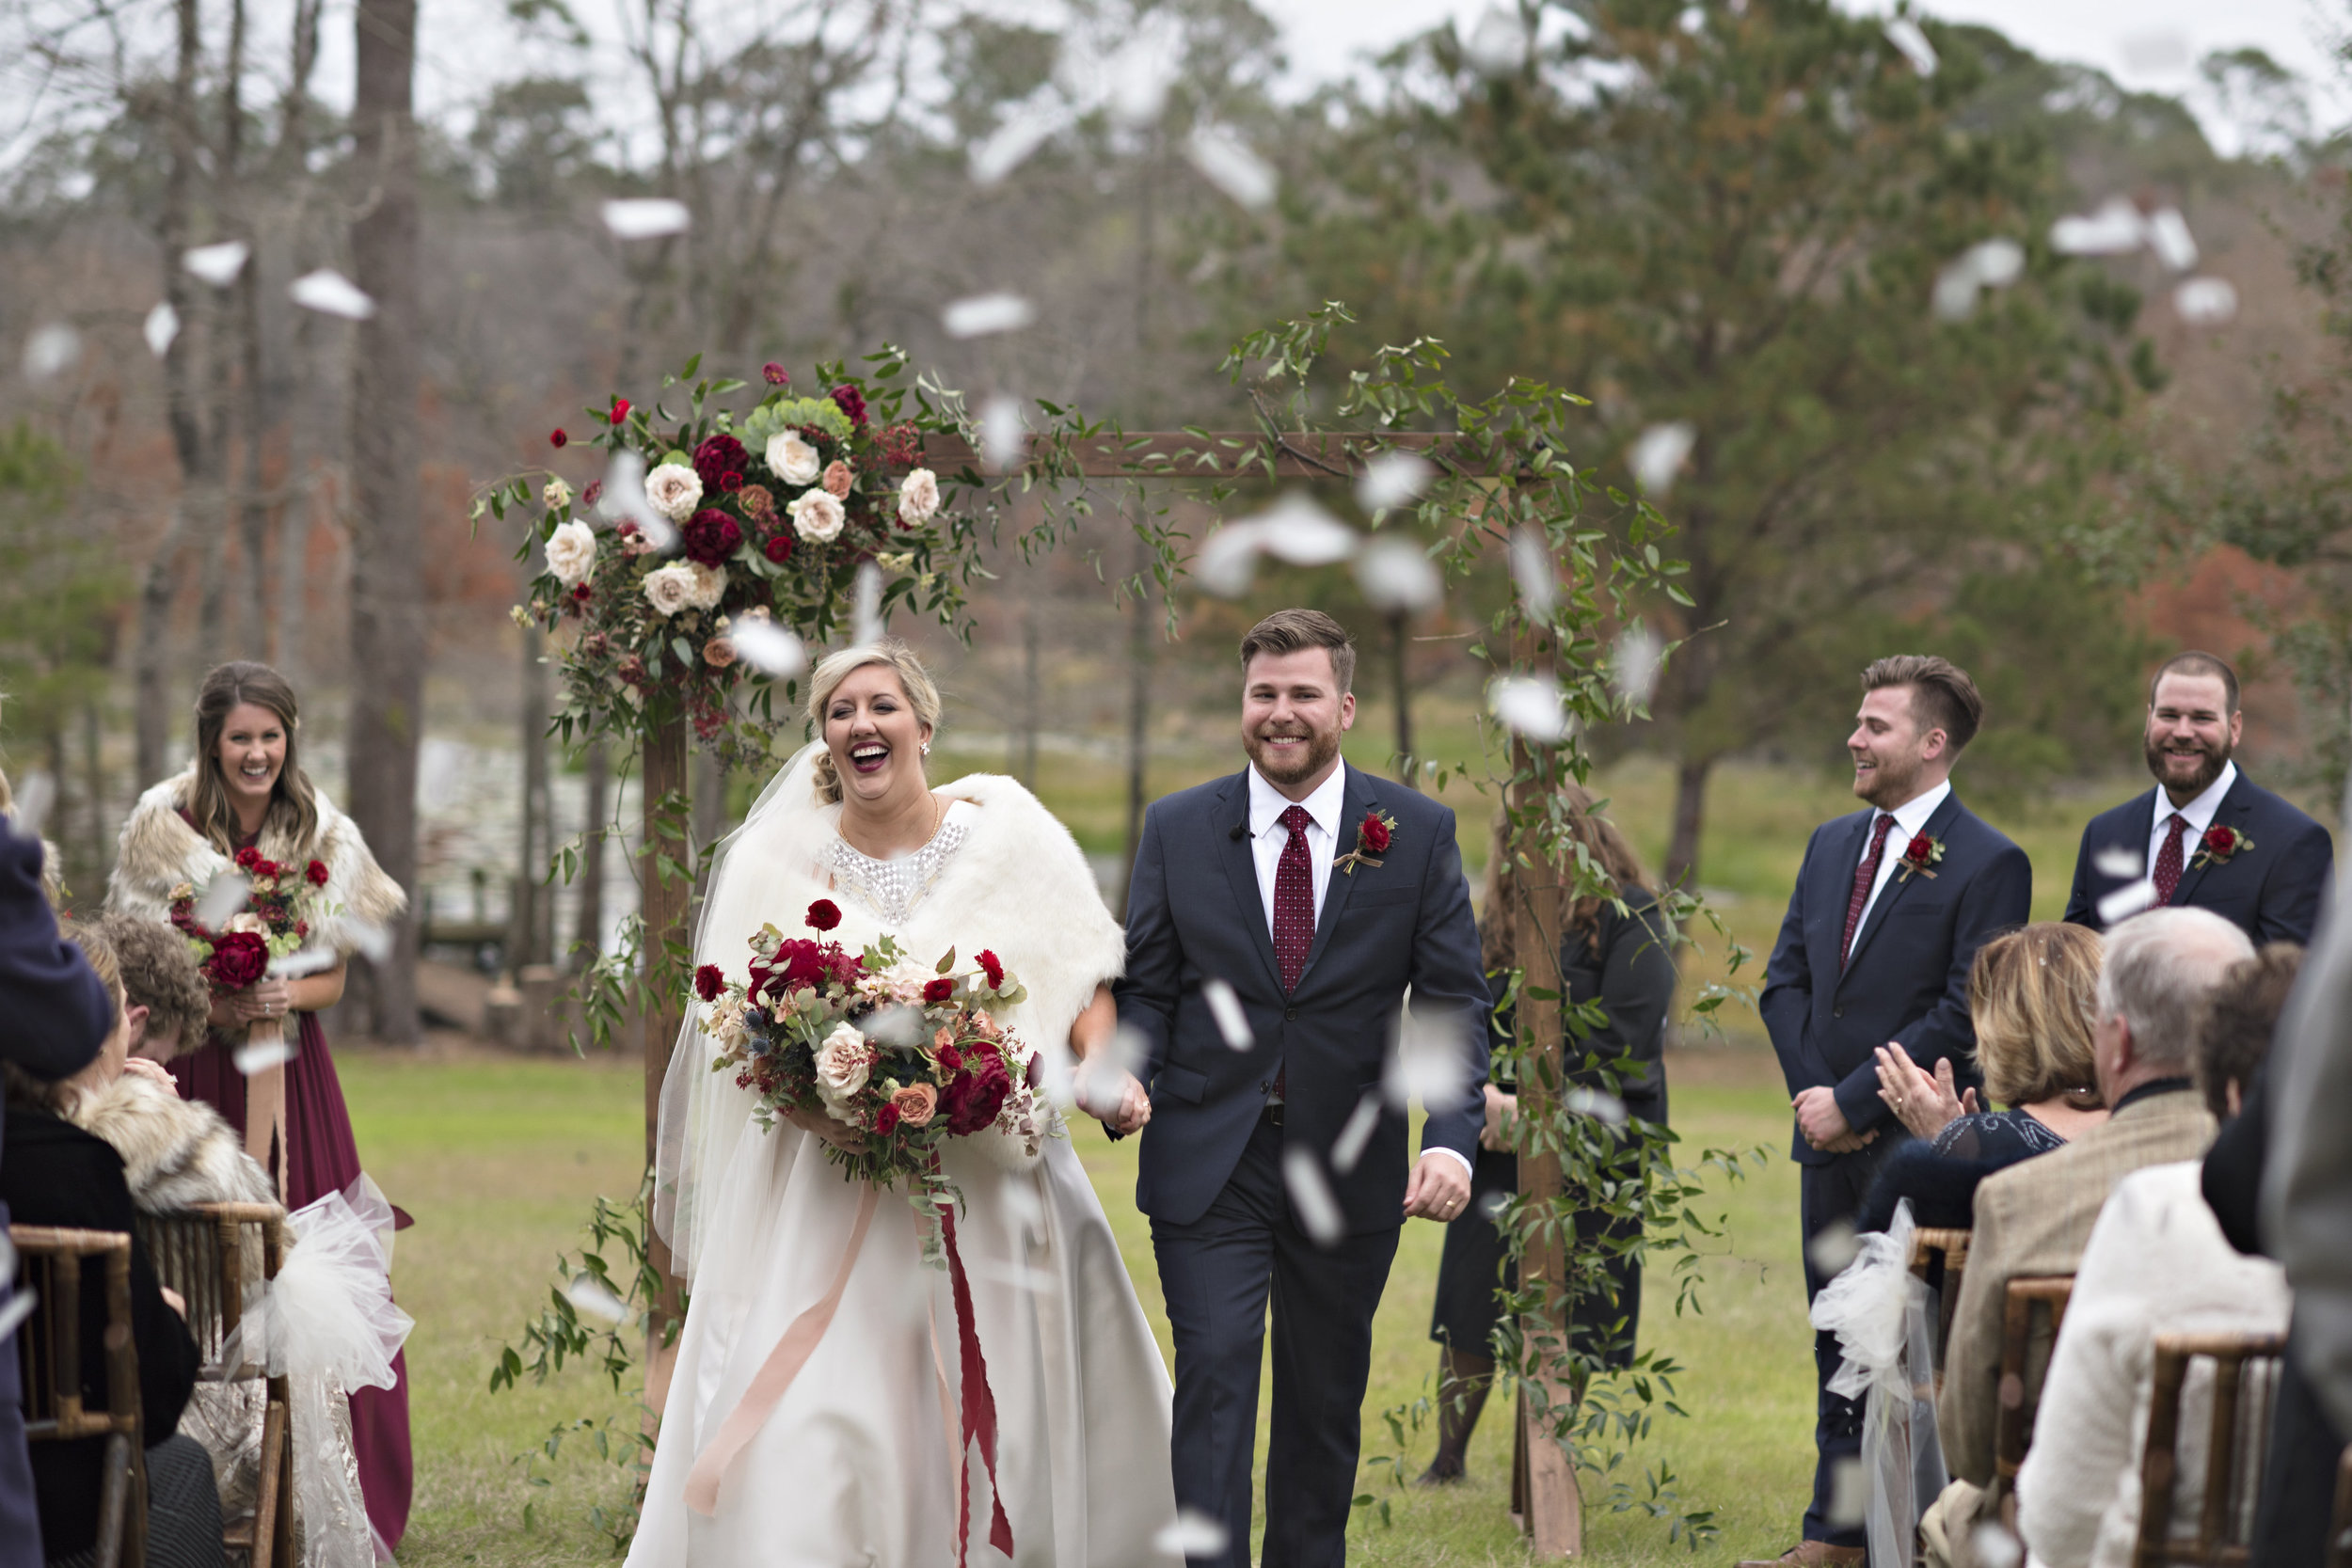 florist_tallahassee_moonstruck_florals_winter_wedding_burgundy_flowers_wedding_arch_wood_arch.jpg